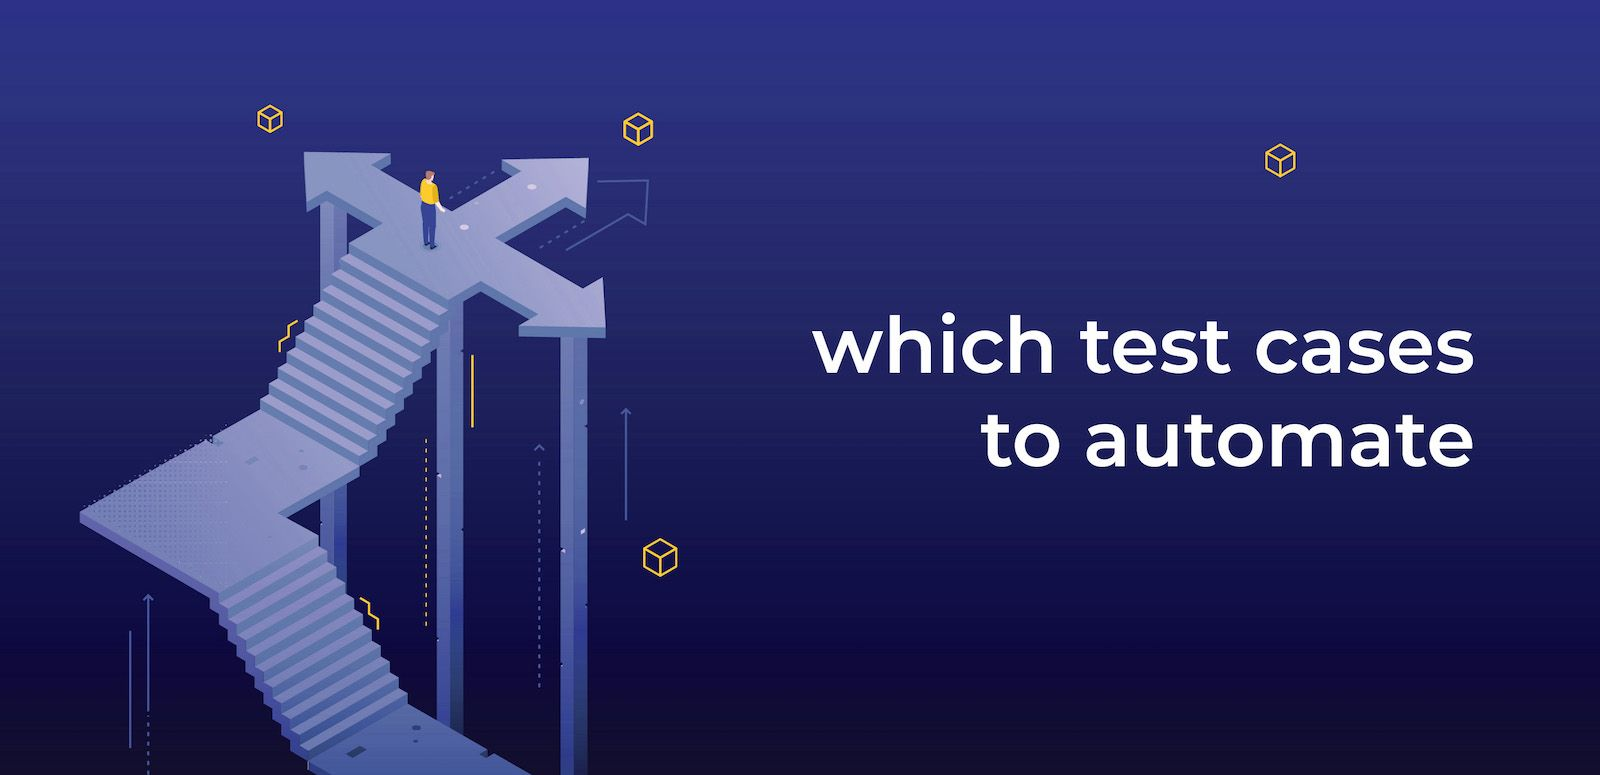 which test cases to automate